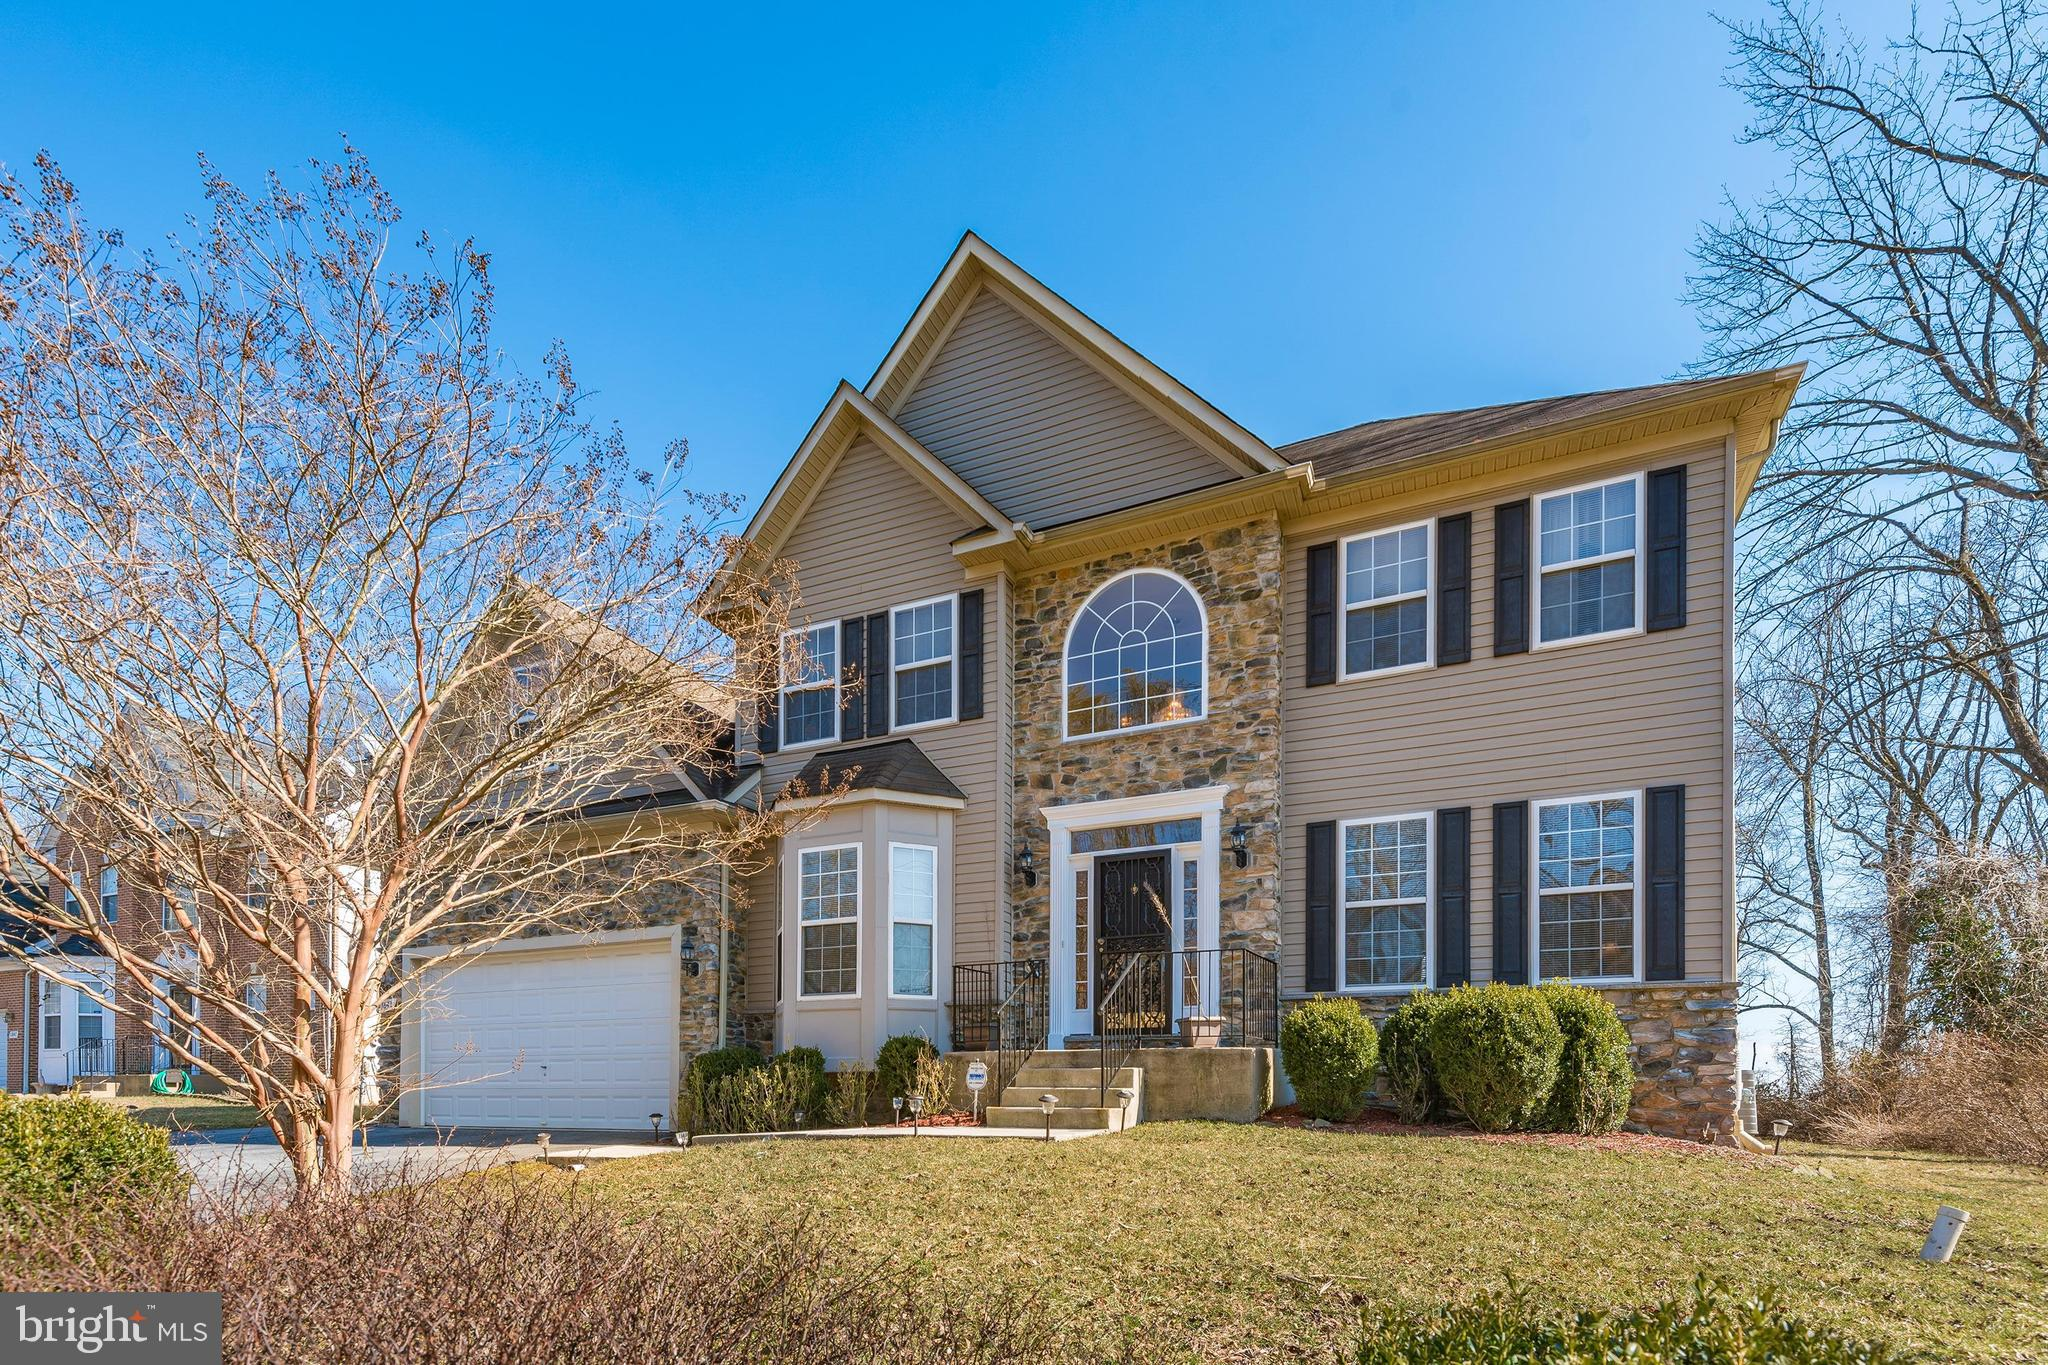 11843 ELLINGTON DRIVE, BELTSVILLE, MD 20705